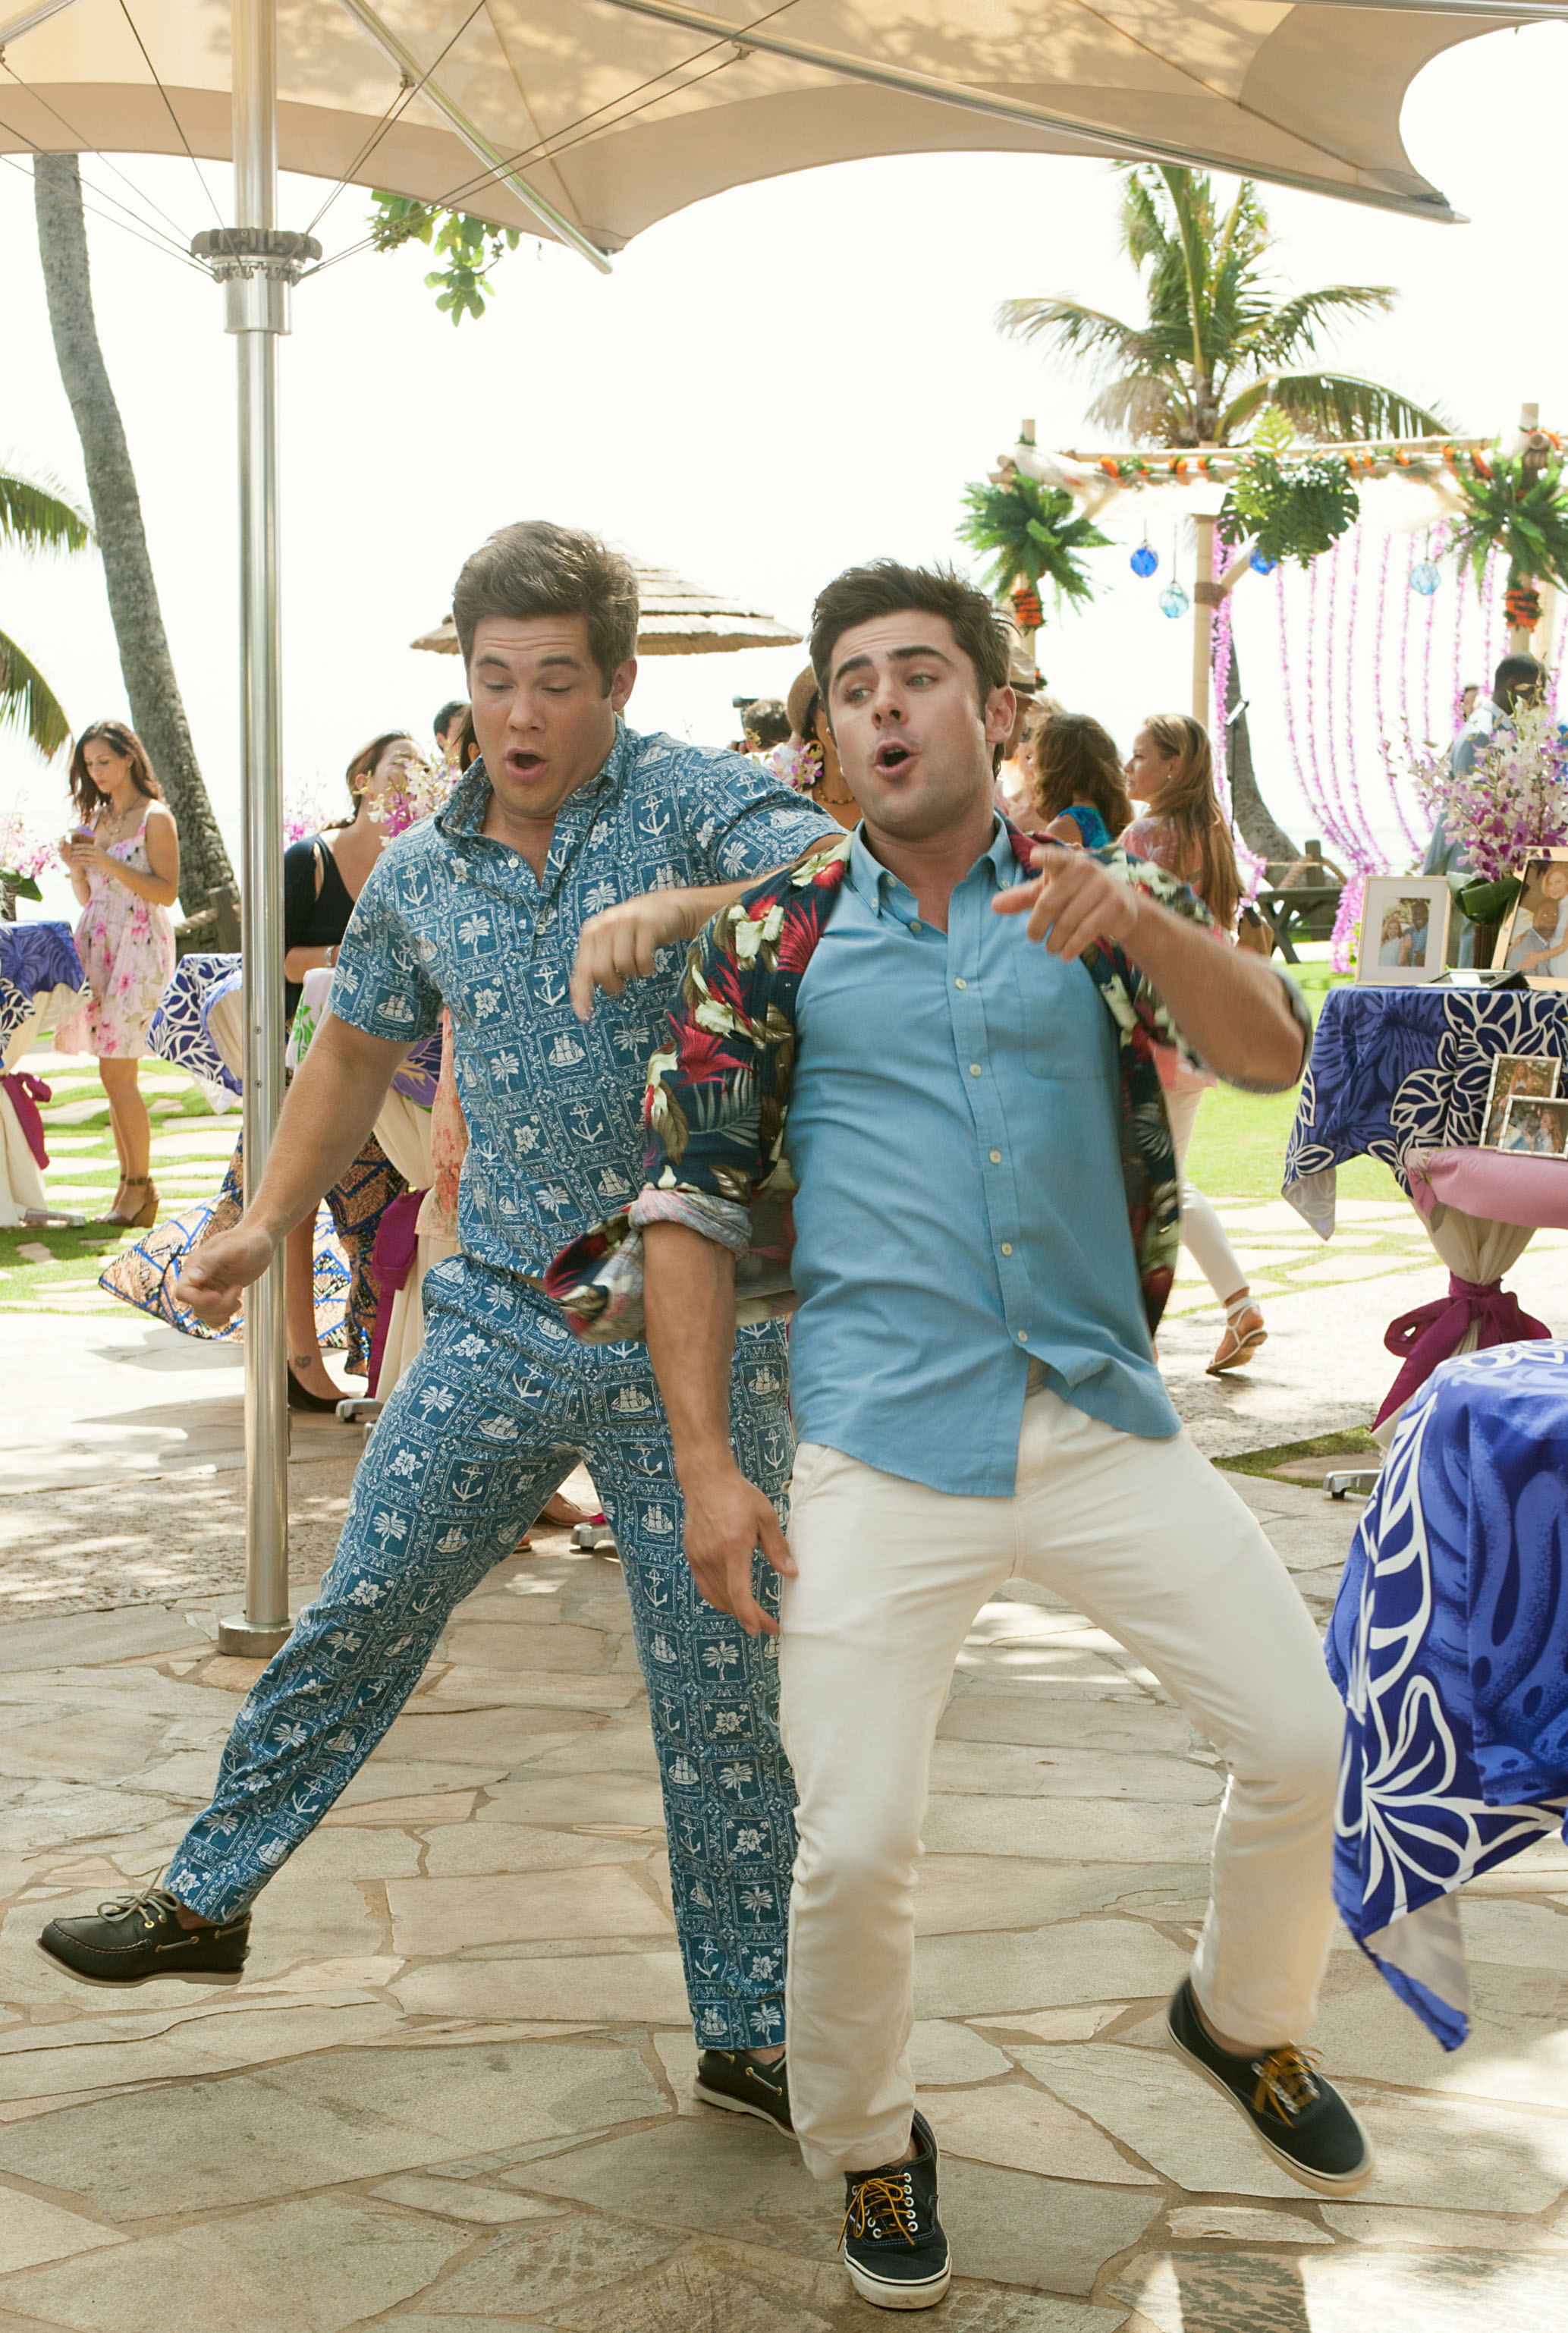 Mike (Adam Devine, left) and his brother Dave (Zac Efron) bust some moves at their sister's wedding. Photo Credit: Gemma LaMana.